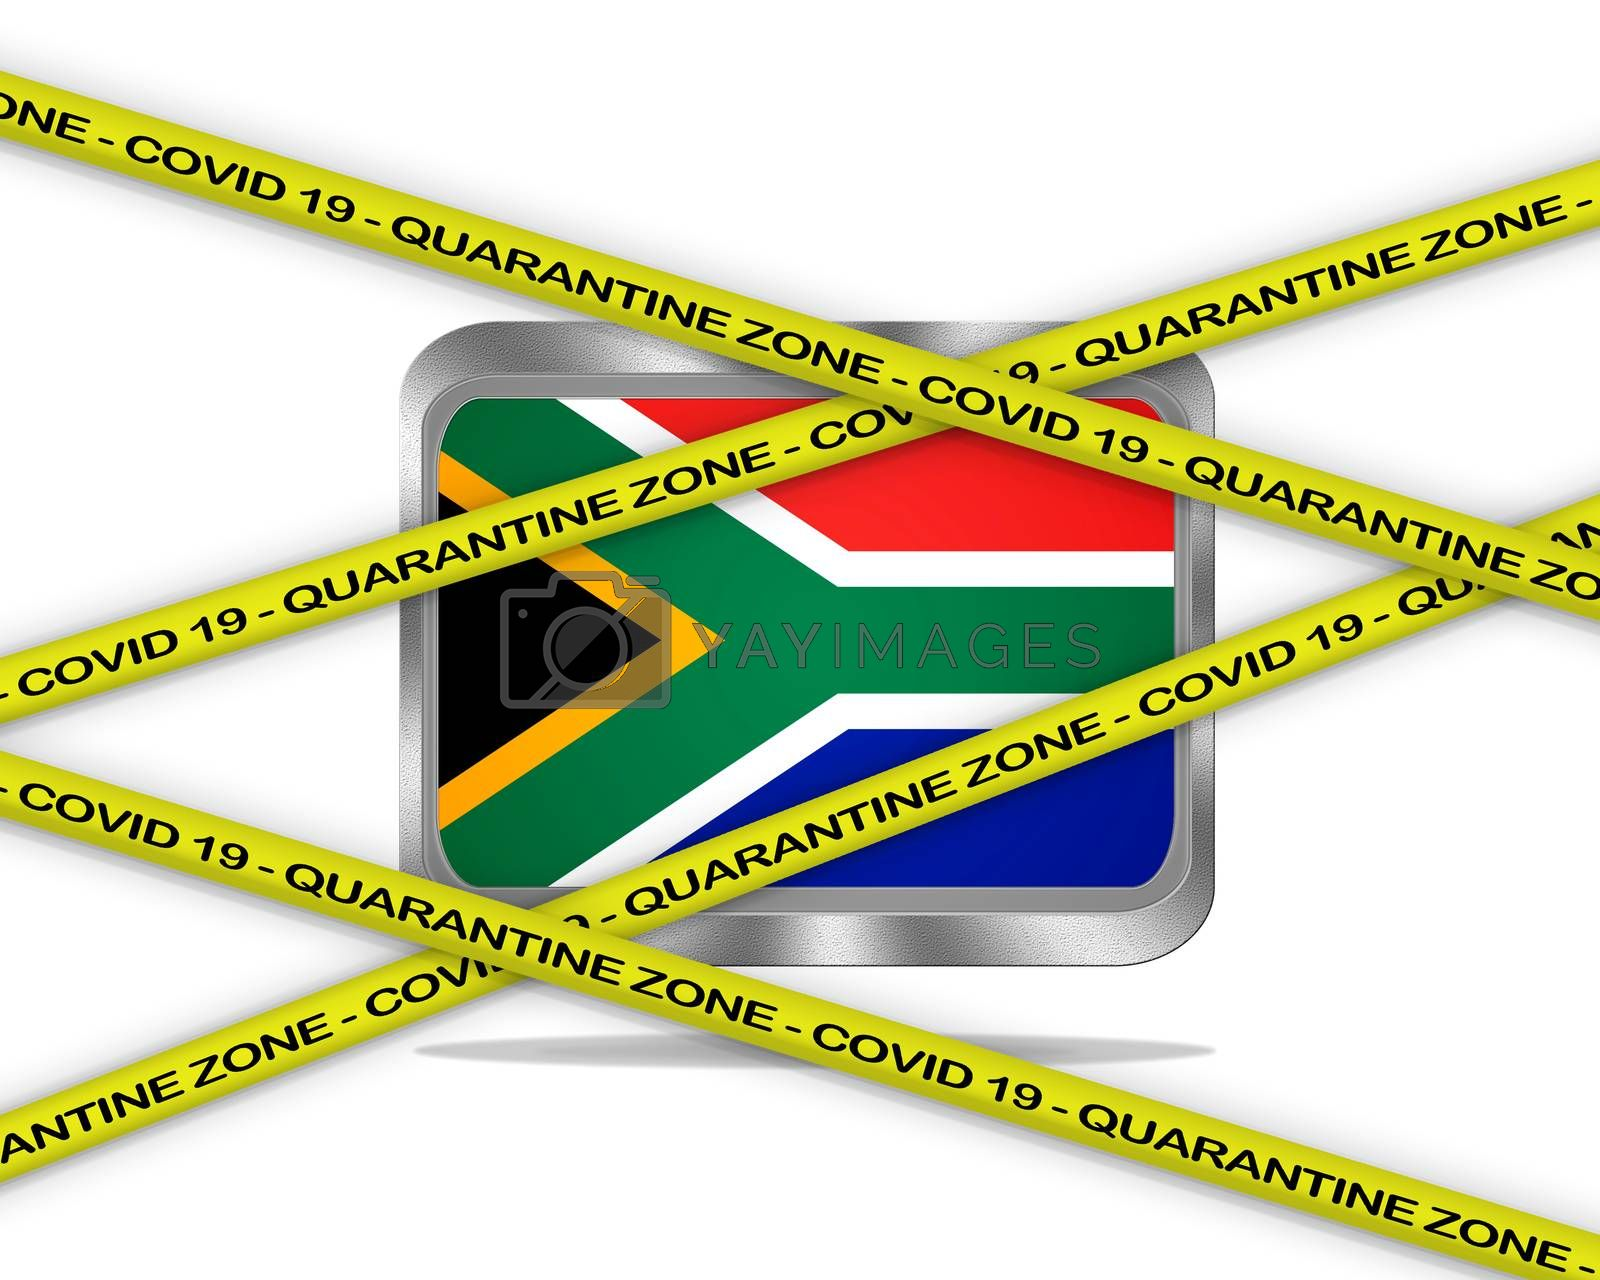 COVID-19 warning yellow ribbon written with: Quarantine zone Cover 19 on South Africa flag illustration. Coronavirus danger area, quarantined country.